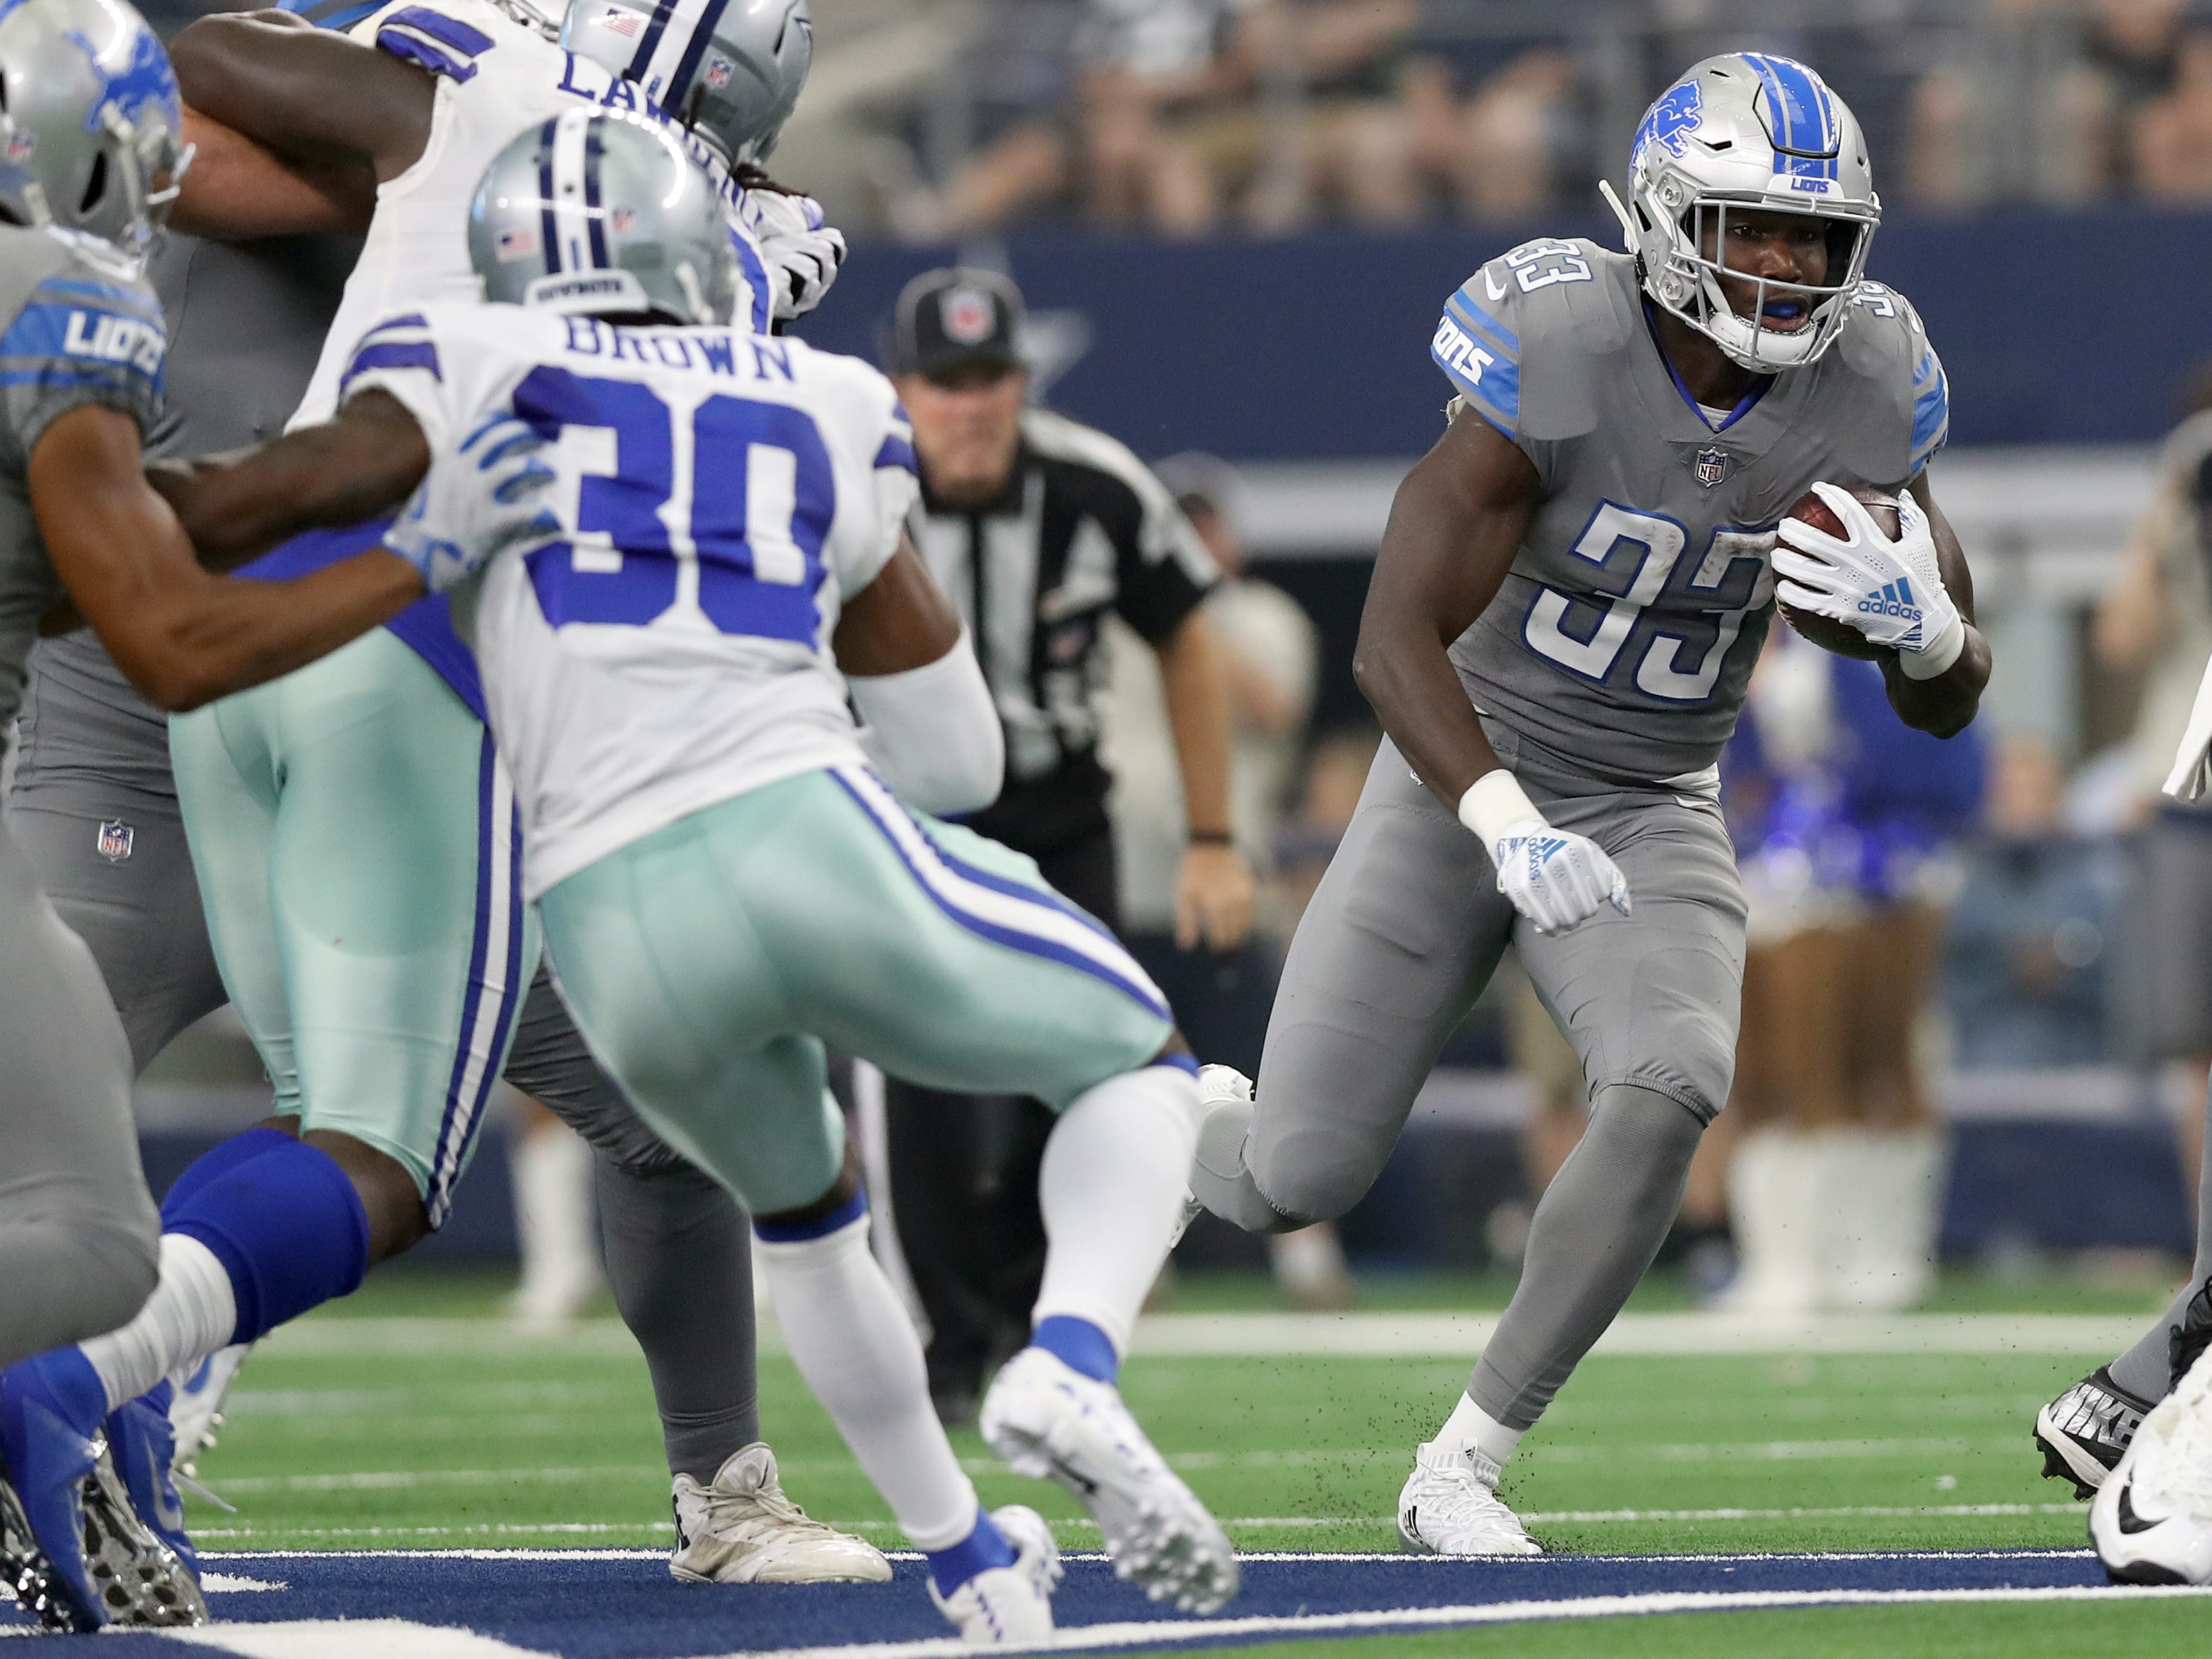 23. Lions (23): Time to start giving rookie RB Kerryon Johnson more than 12 touches per game. He's earned it, and it ultimately preserves Matthew Stafford.